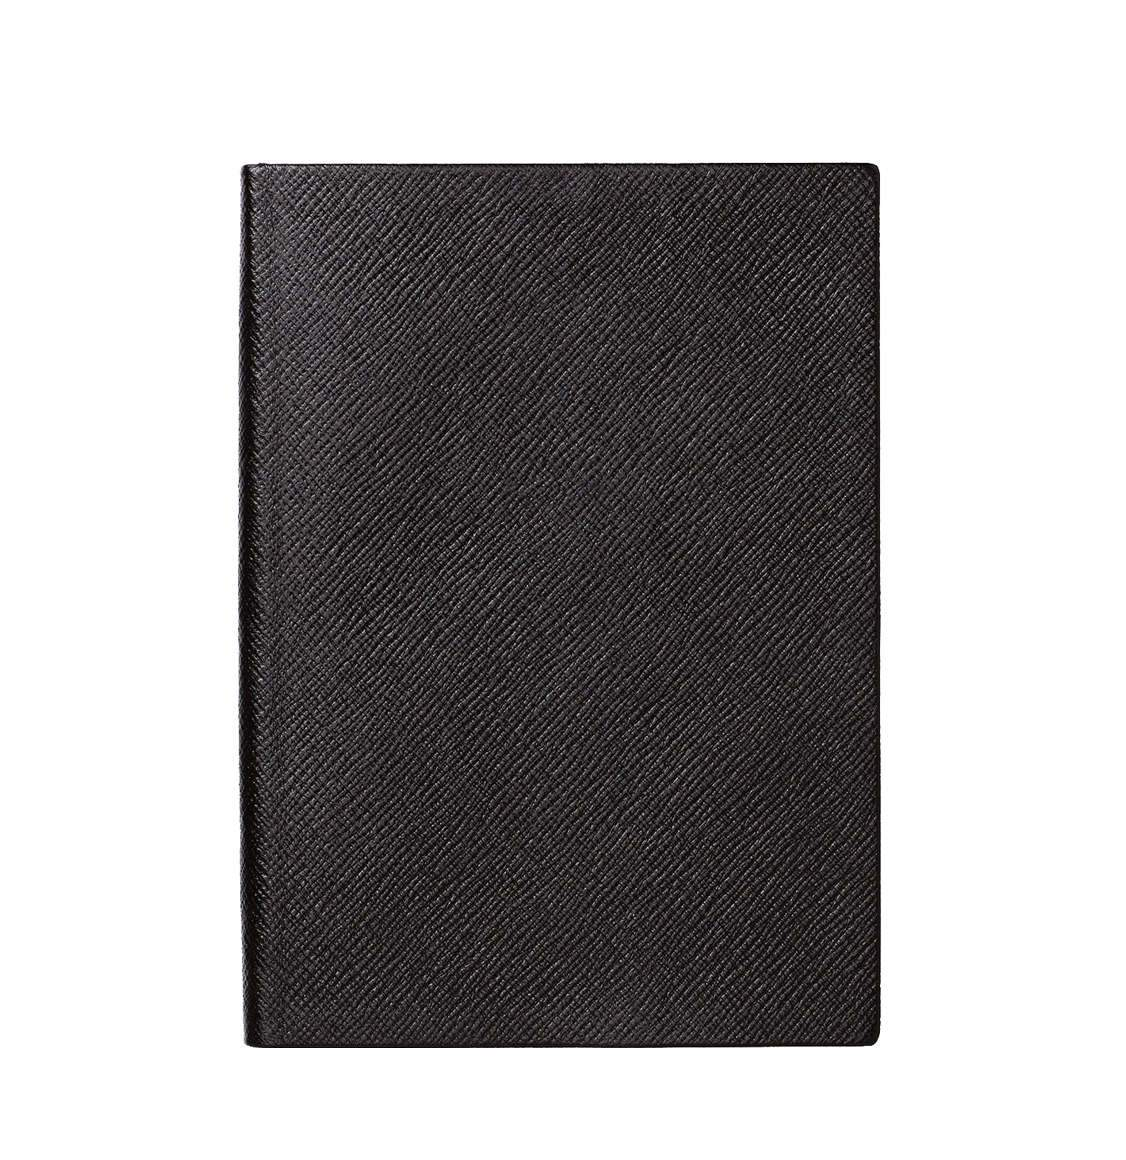 Smythson Panama Cross-Grain Leather Soho Notebook